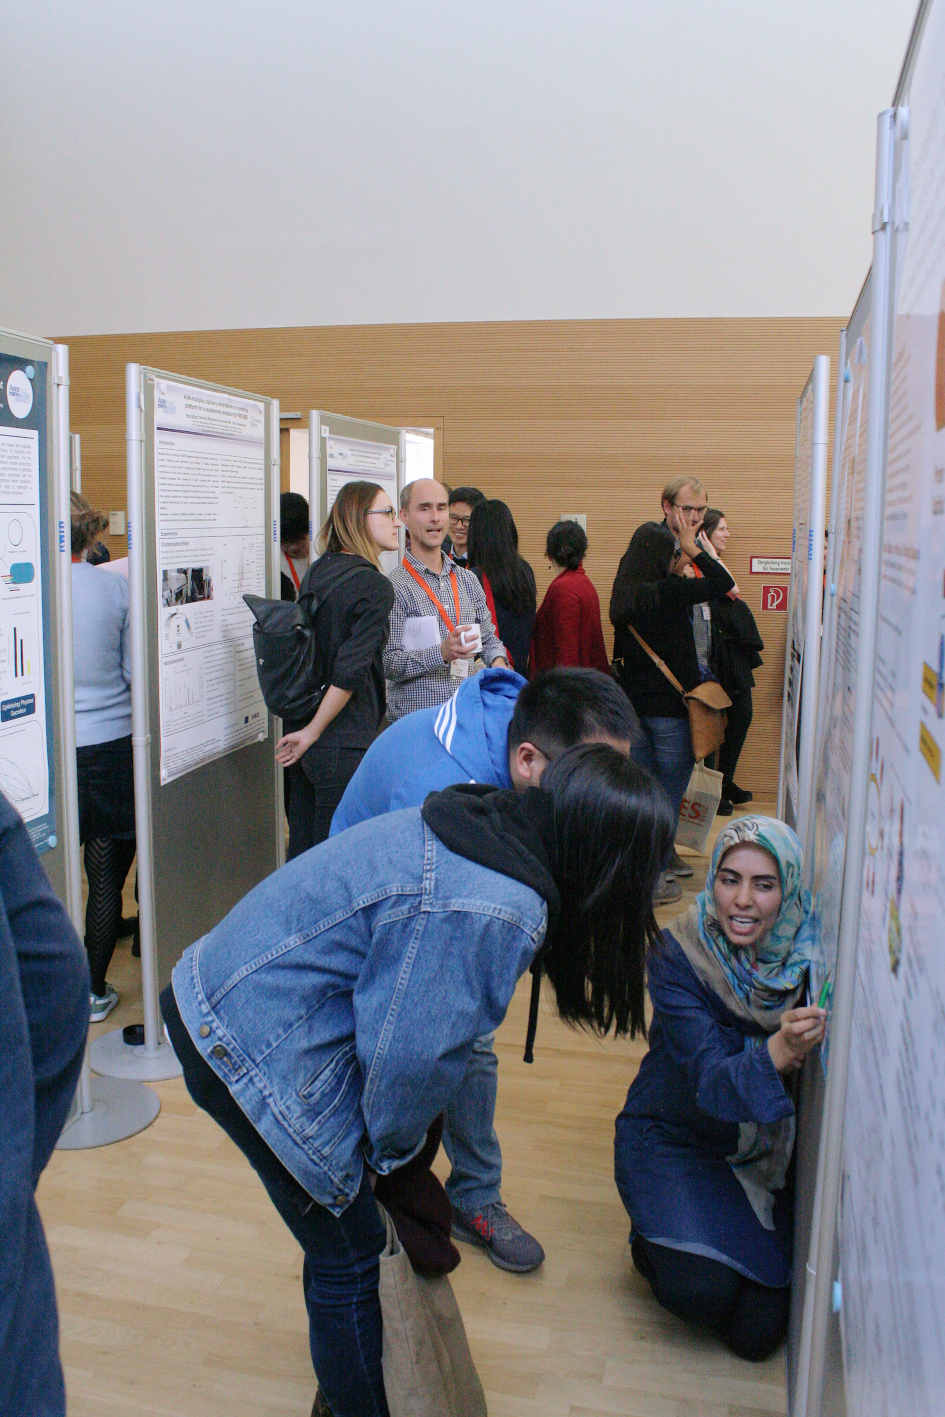 Visitors examine and discuss posters